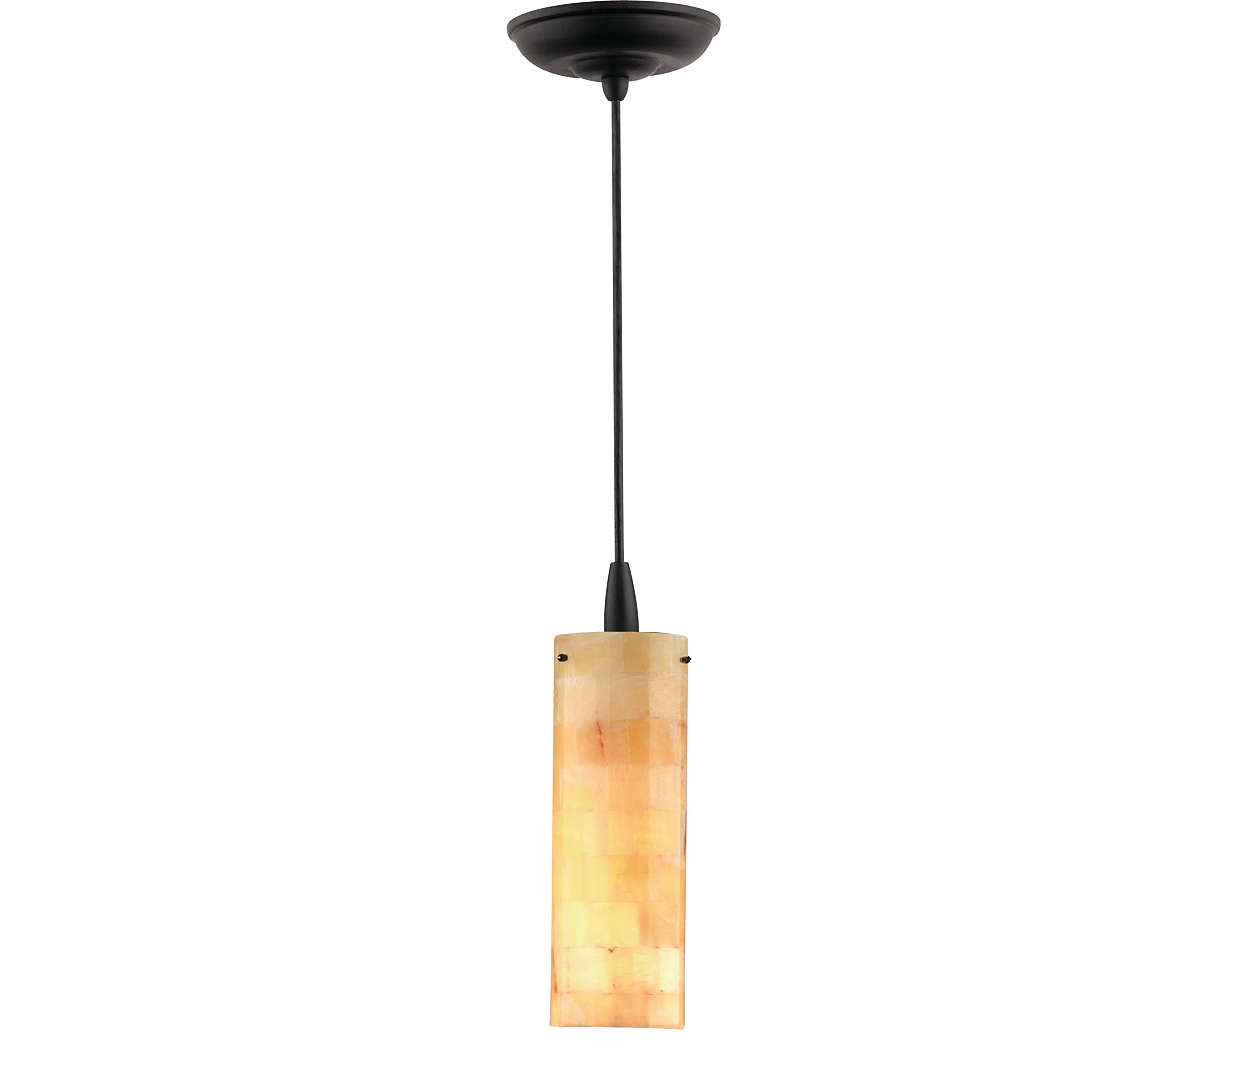 Onyx Mosaic 1-light pendant in Black finish